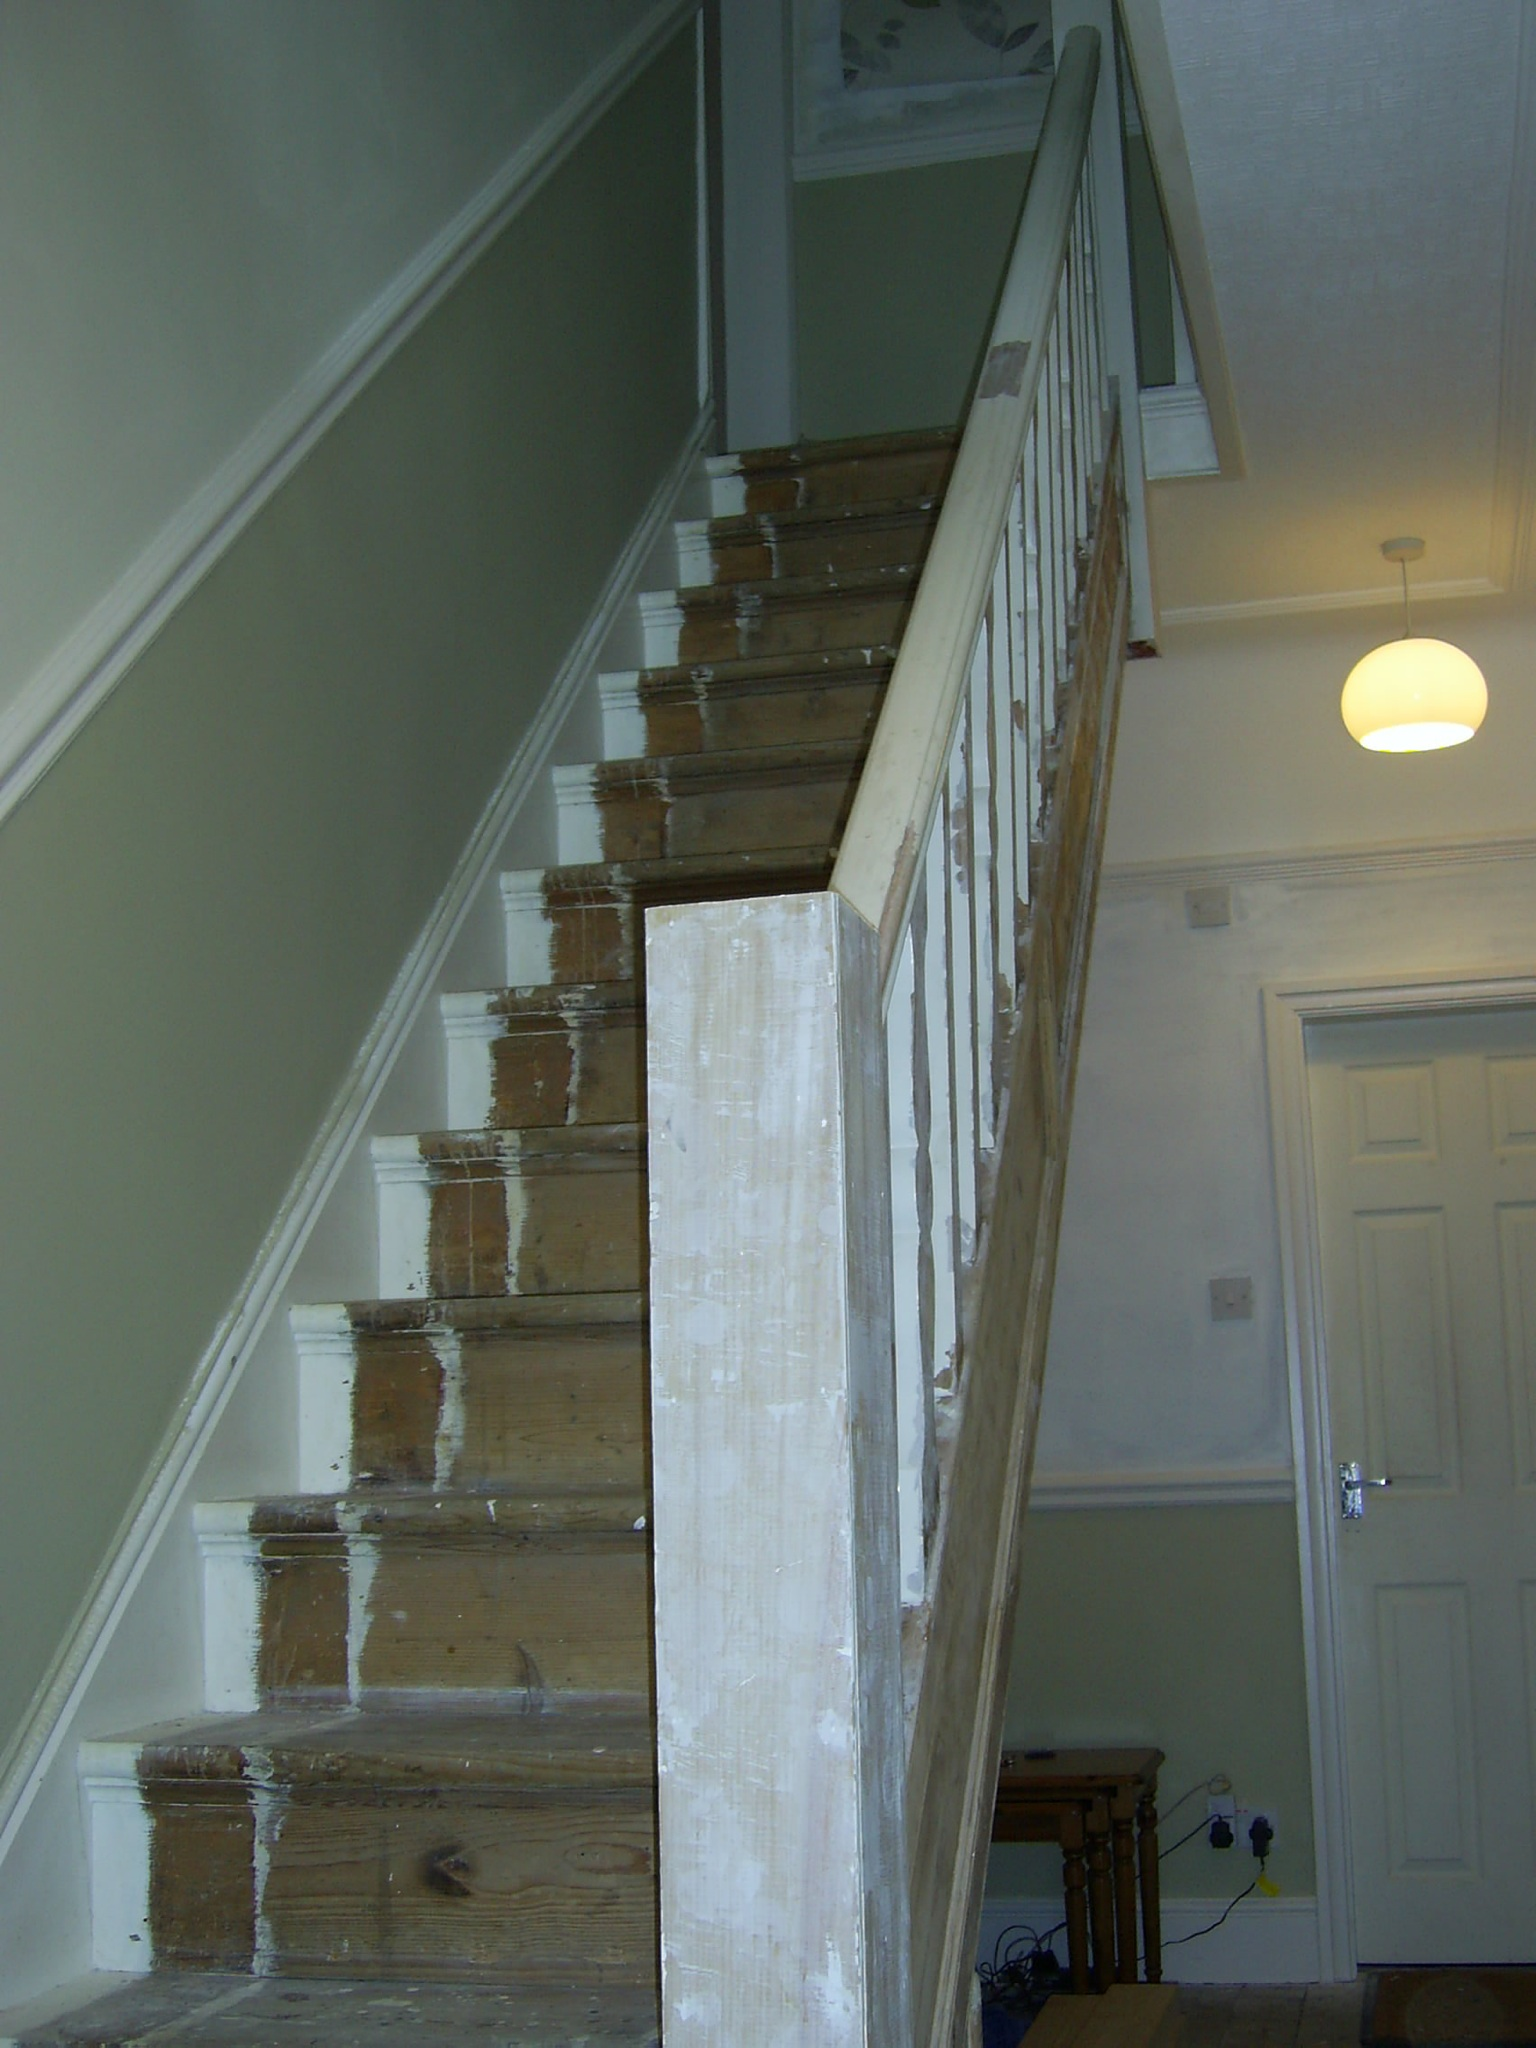 Merveilleux There Are Many Benefits To Wigan Staircase Renovation Rather Than The  Construction Of A Complete New Staircase. The Biggest Saving For Such A  Project Is The ...